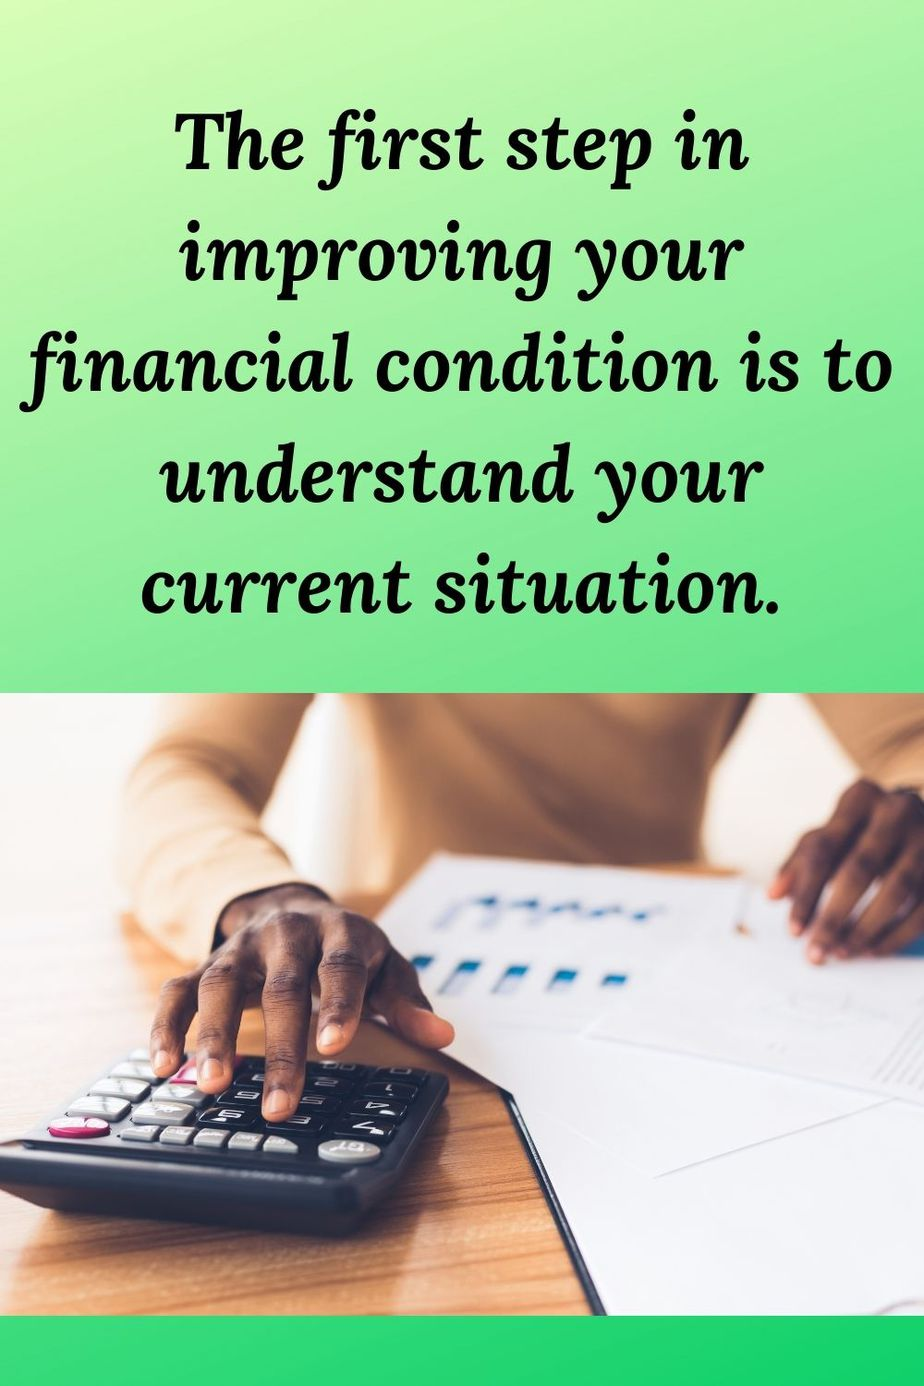 """african american woman with calculator and the words Investment Account Reports When examining your investment reports, make sure to look at them over both long and short-term periods. Examine any fees you are paying. Check to see if you are earning money on your investments or losing money. If your investments are losing money over the short run, it means one thing. If your investment accounts are losing money over the long run, it may be time to make changes in your investment strategy. Tax Returns for the Past Two Years Tax returns are important financial documents because they tend to include income and income-related expenses in one document. If you are underpaying your tax obligation each year, there may be penalties from the Internal Revenue Service. If you are overpaying your tax obligation each year, you are potentially misusing money that could be better invested elsewhere. [Tweet """"The first step in improving your financial condition is to understand your current situation.""""] Pay Stubs Pay stubs are an important look at your financial condition. When looking at your pay stubs, look at the deductions. Are you contributing the right amounts to your 401k and other retirement accounts? If your employer matches 401k contributions, it is important for you to contribute as much as possible. Failure to do so is tantamount to throwing away money. Once you understand your financial condition, make a plan to improve things. After you have examined the documents listed above you may begin to take action to improve your financial condition. Before taking action to make improvements, develop a plan. Your finances are too important a thing to try to improve without a plan. You must consider what you want to change about your finances and develop a plan for making those changes. This is an area where you need to look deep before you leap. If you are not a person who is good with numbers or you do not understand how to improve your finances, do not be dismayed. You can lea"""